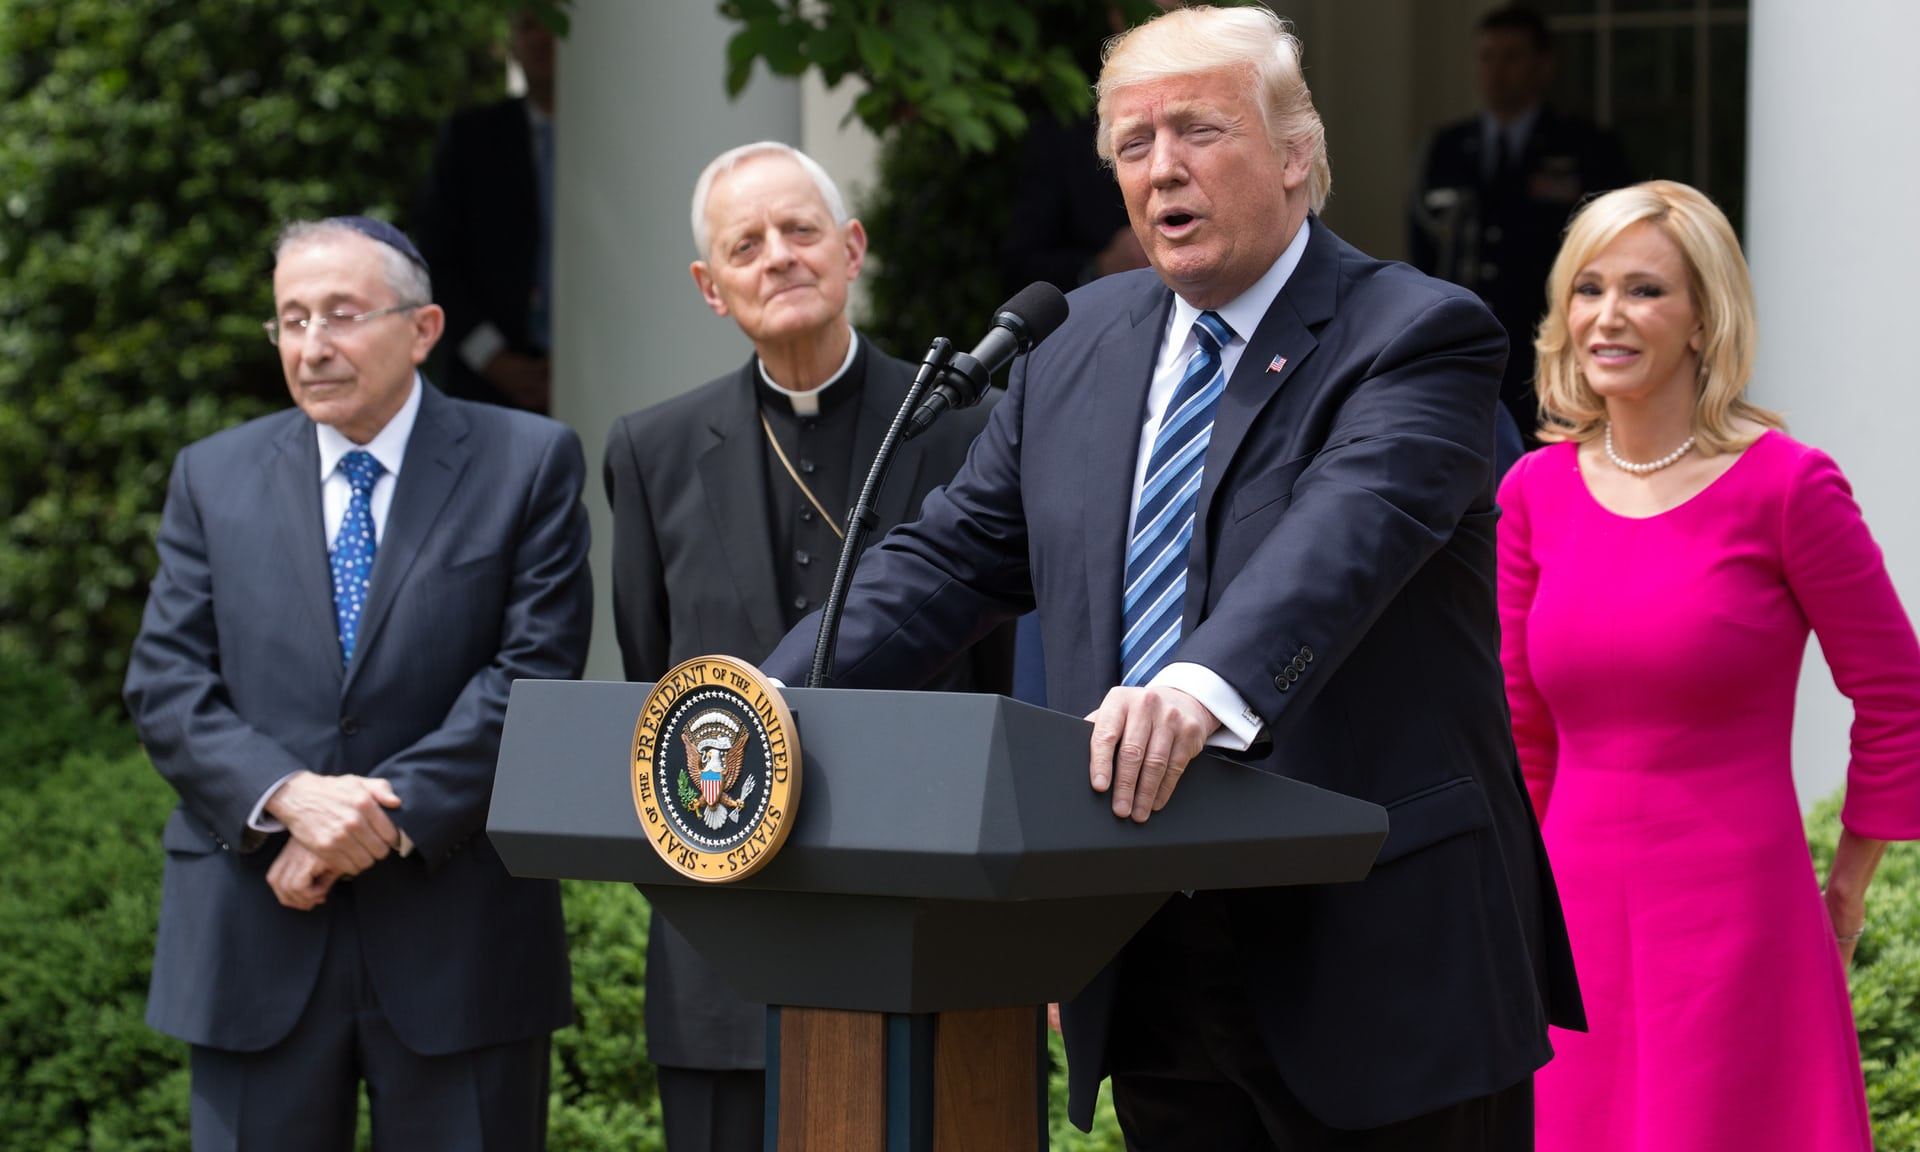 Donald Trump with Rabbi Marvin Hier, Cardinal Donald Wuerl and Pastor Paula White in the Rose Garden of the White House. Photograph: NurPhoto/NurPhoto via Getty Images